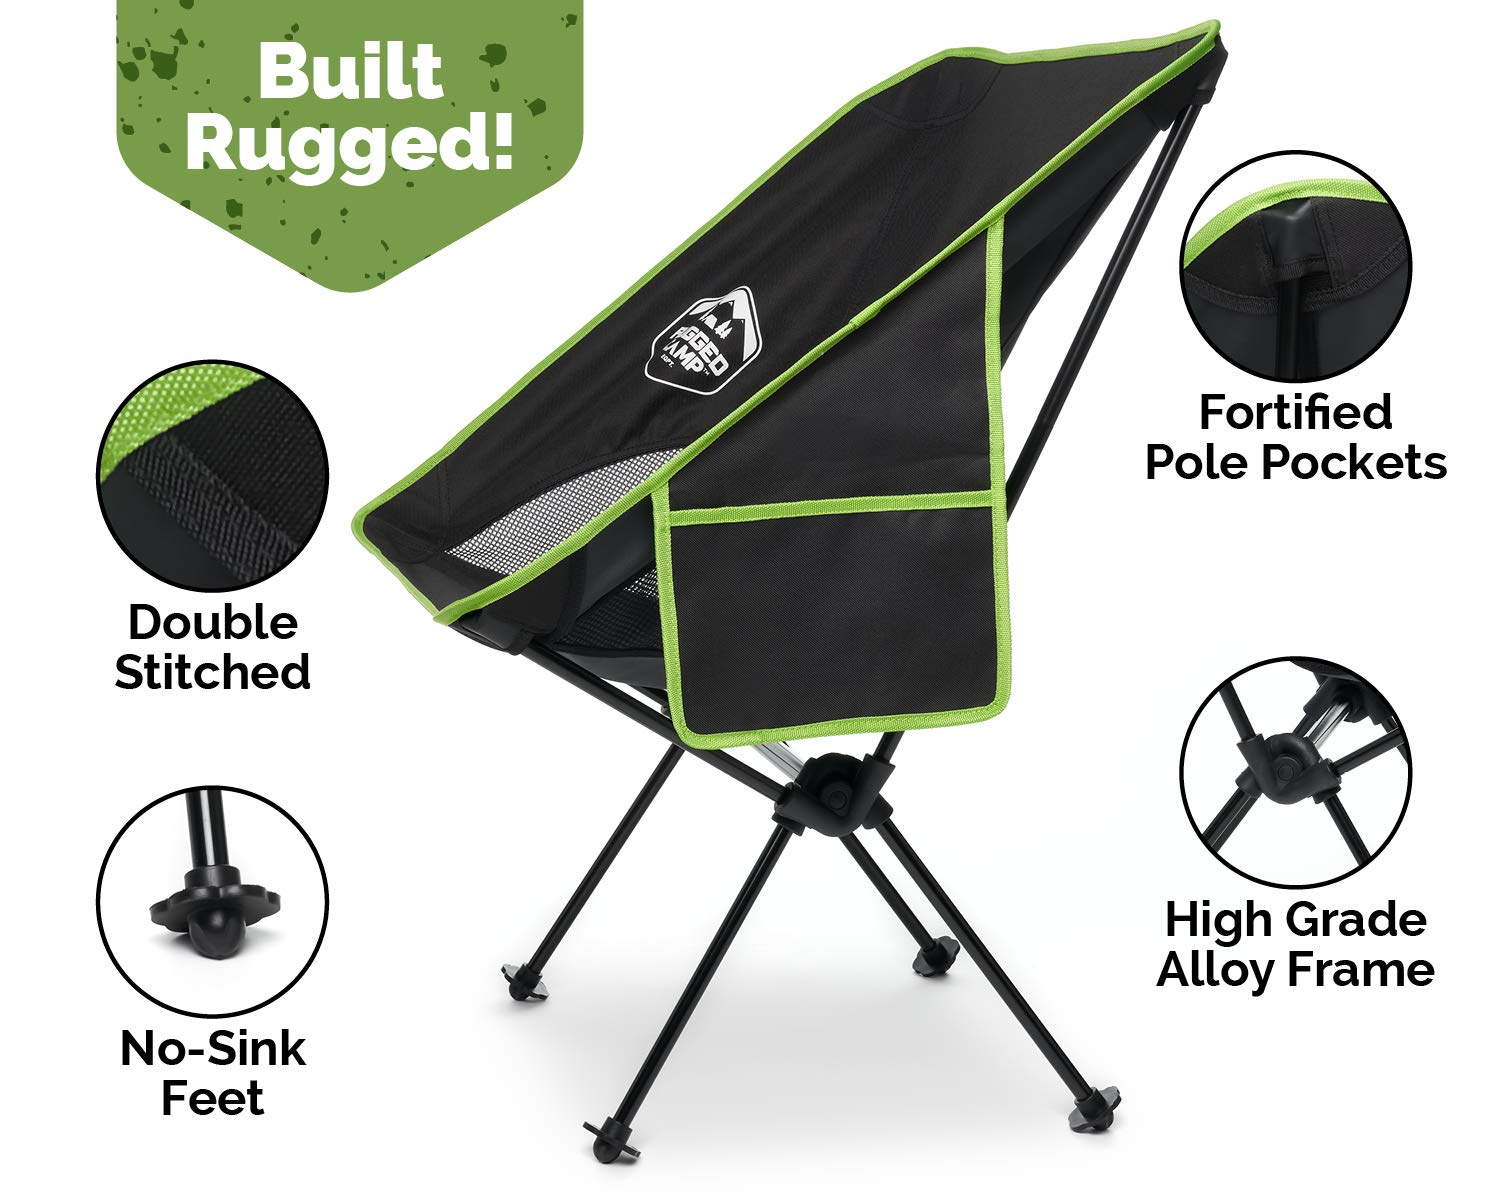 Rugged Camp Portable Folding Chair – Perfect for Camping, Beach, Sporting Events, Festivals – Camping Gear Accessory and Outdoor Folding Chair